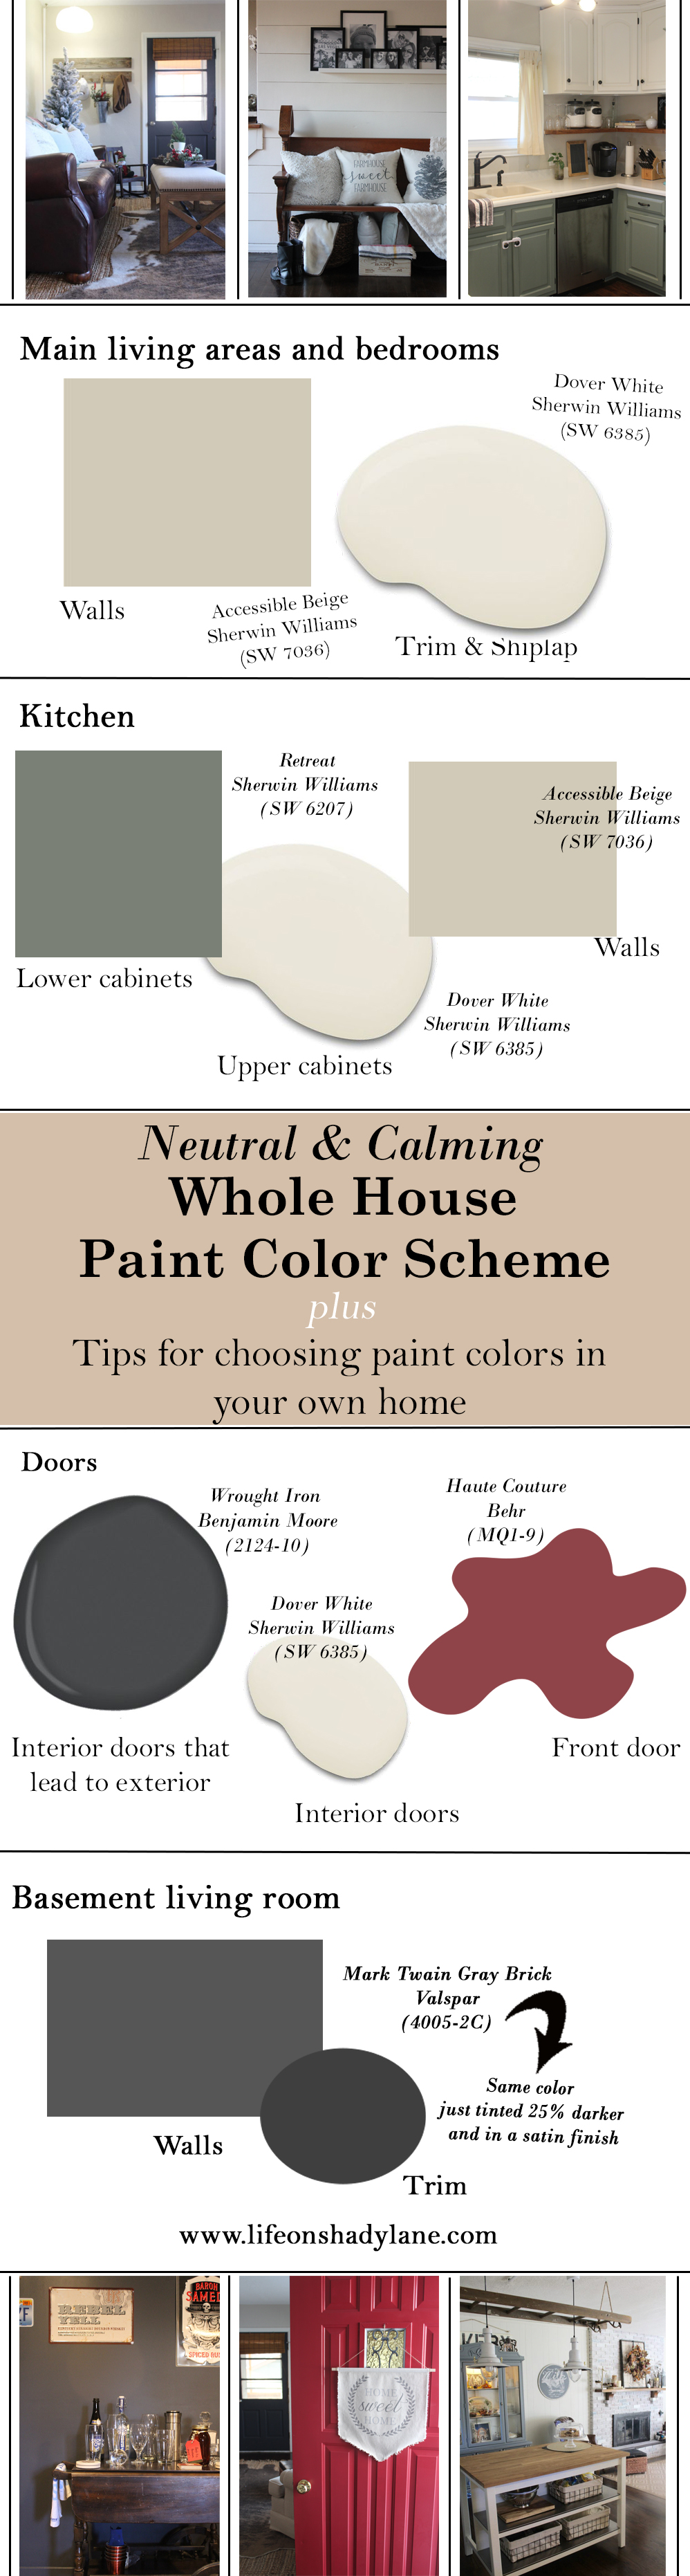 The Paint Colors We Used In Our Home My Tips On Picking Colors For Your Own Home